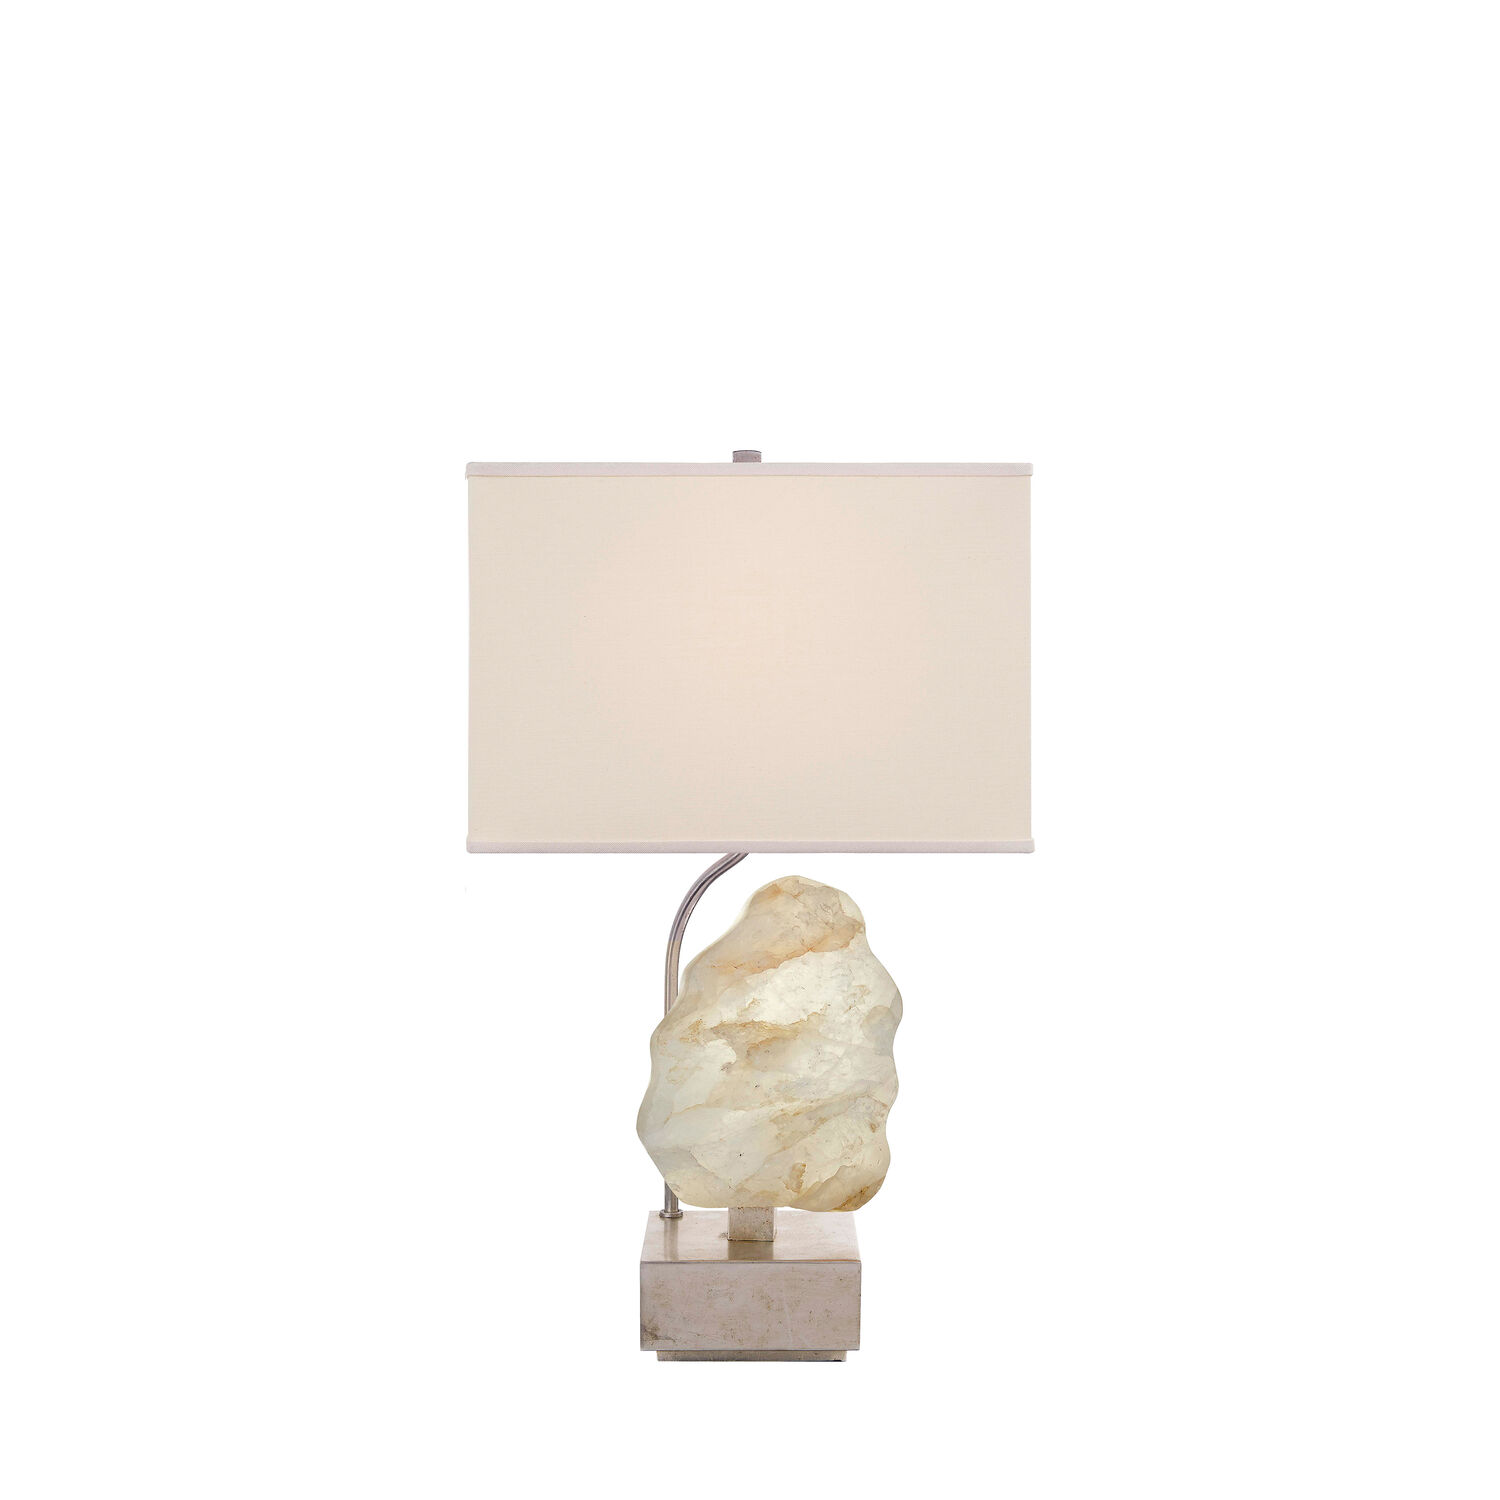 Trieste Small Table Lamp